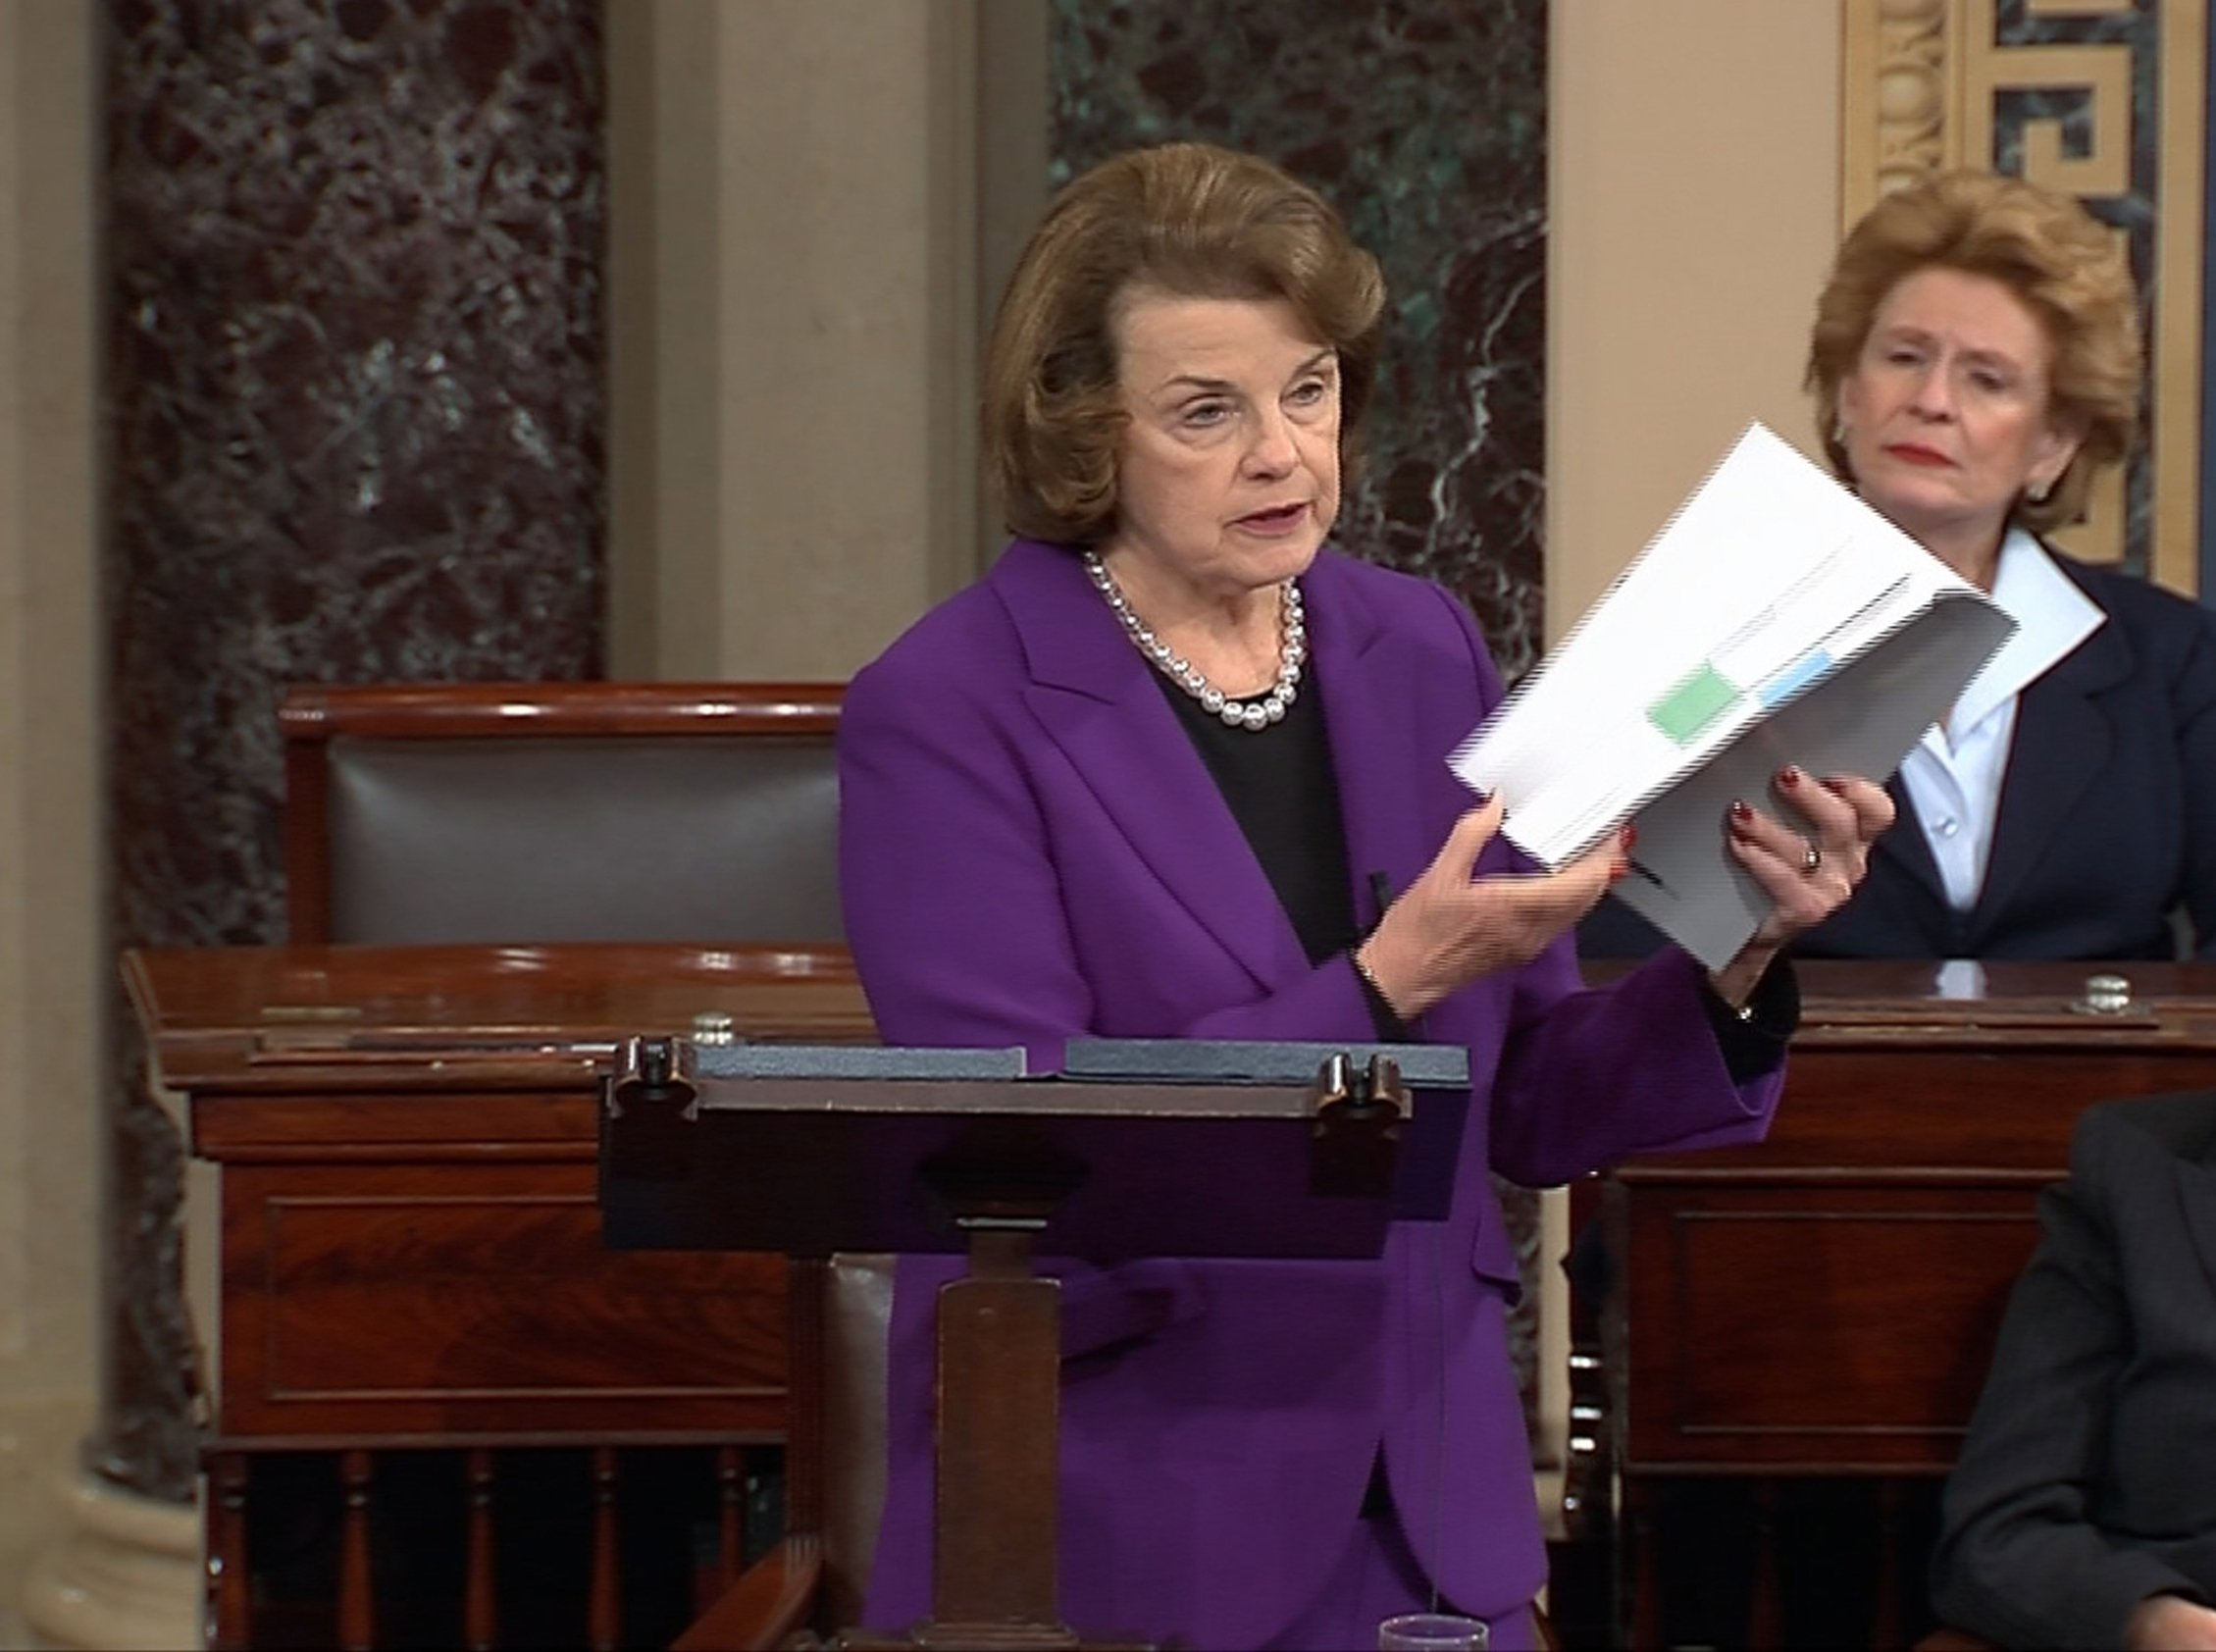 Senate Intelligence Committee Chairwoman Dianne Feinstein discusses a newly released Intelligence Committee report on the CIA's anti-terrorism tactics, in a speech on the floor of the U.S. Senate on Capitol Hill in Washington on Dec. 9, 2014.